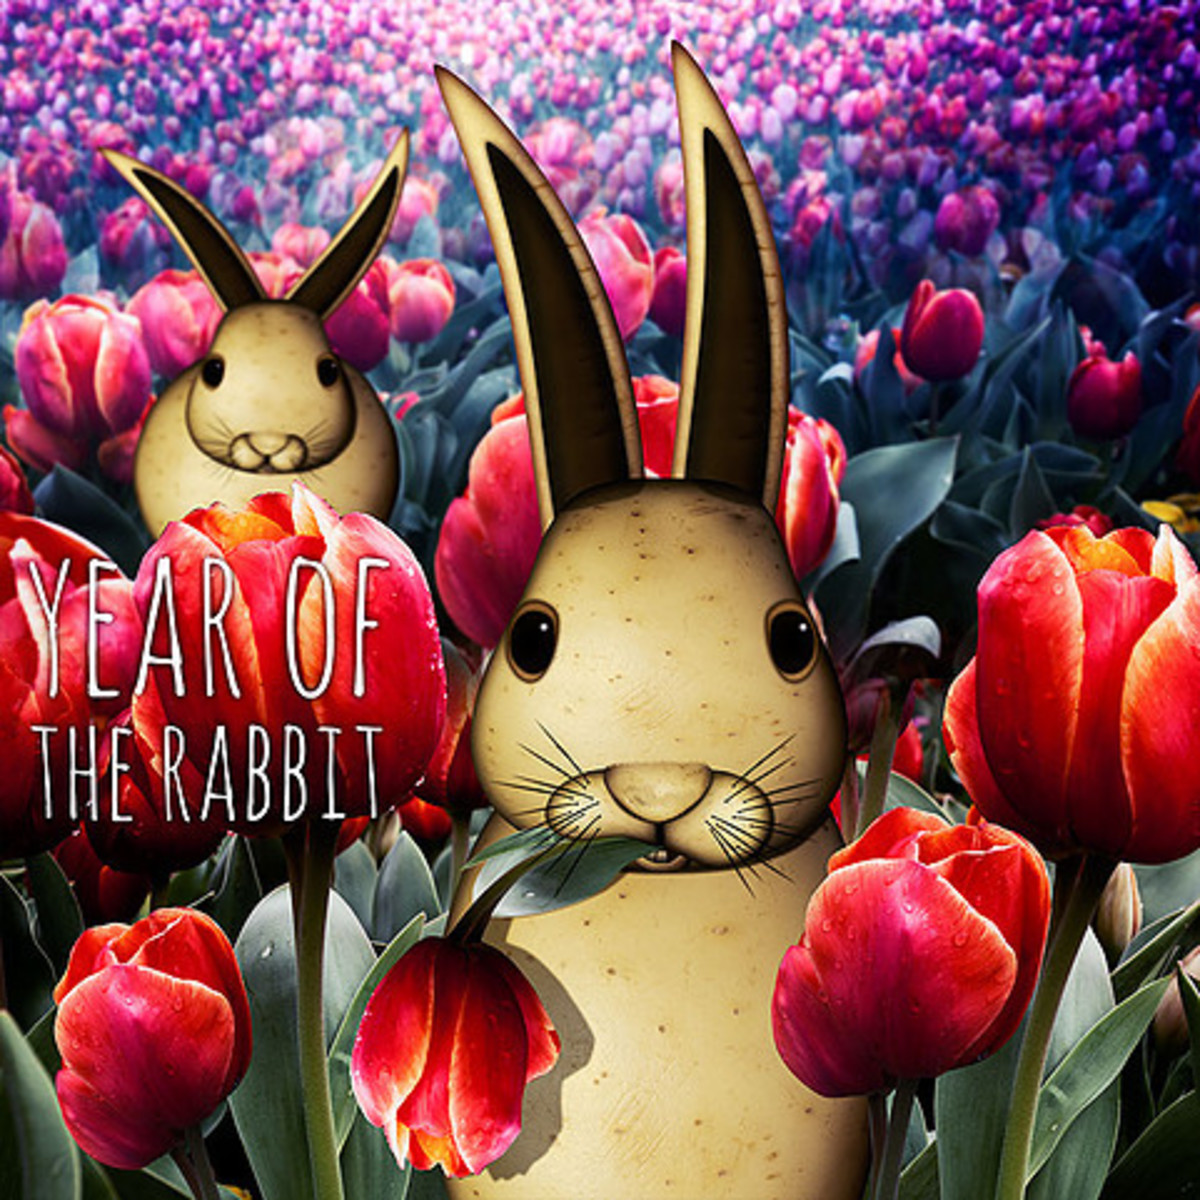 Carrie Webster - The Year of The Rabbit